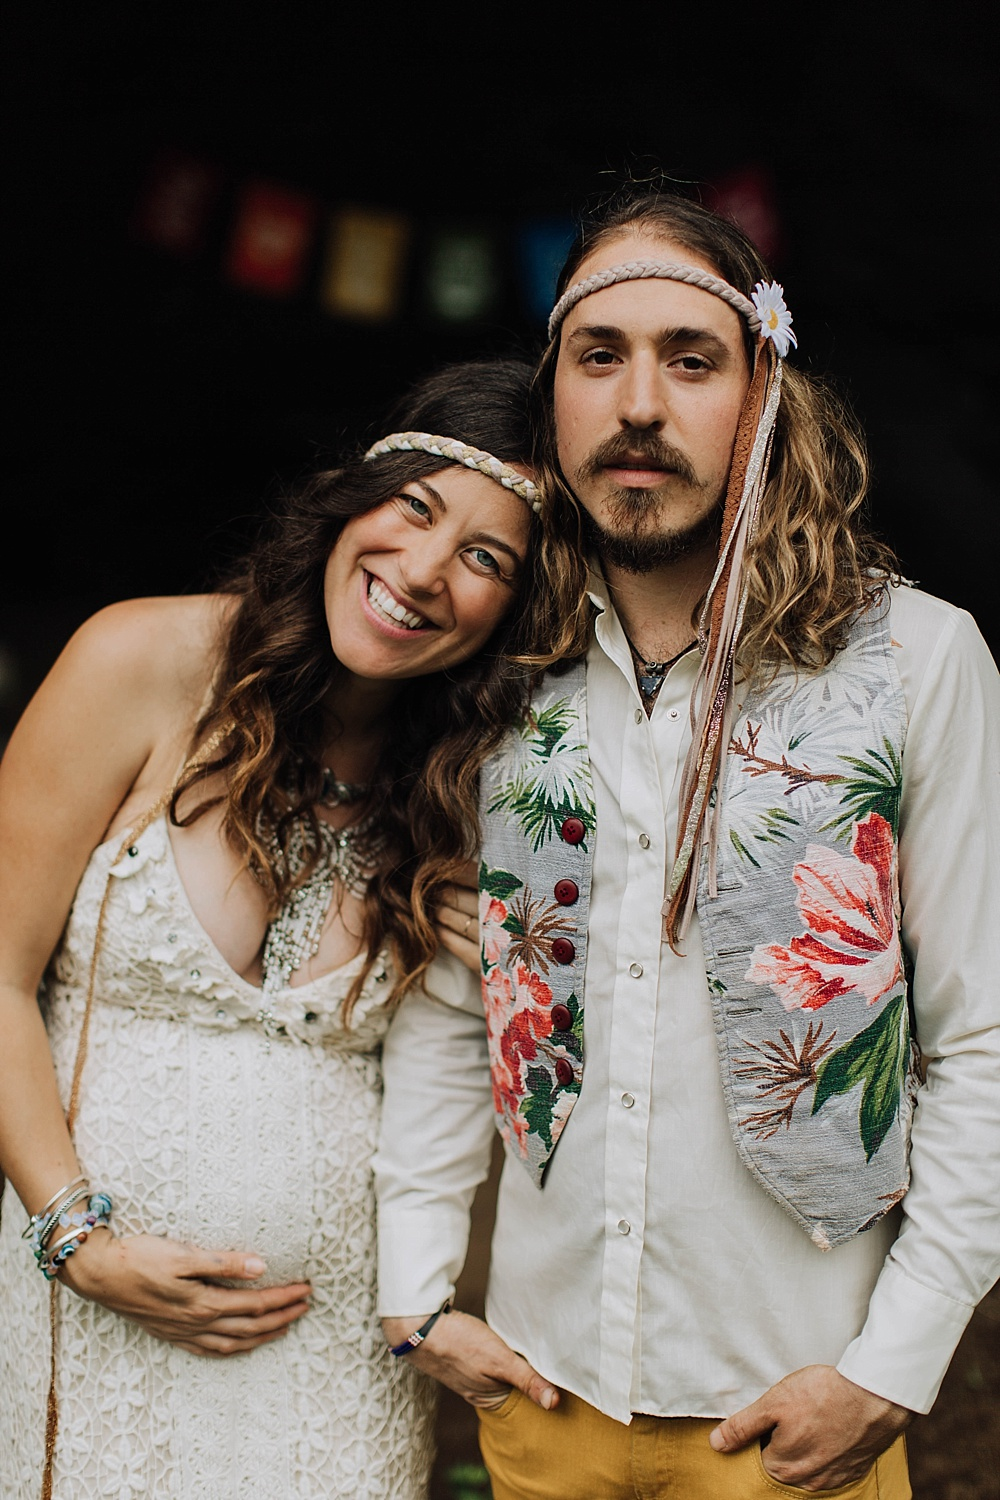 maui engagement, couples, and wedding photographer cadencia photography photographs gypsy halos hippie wedding in maui, hawaii.